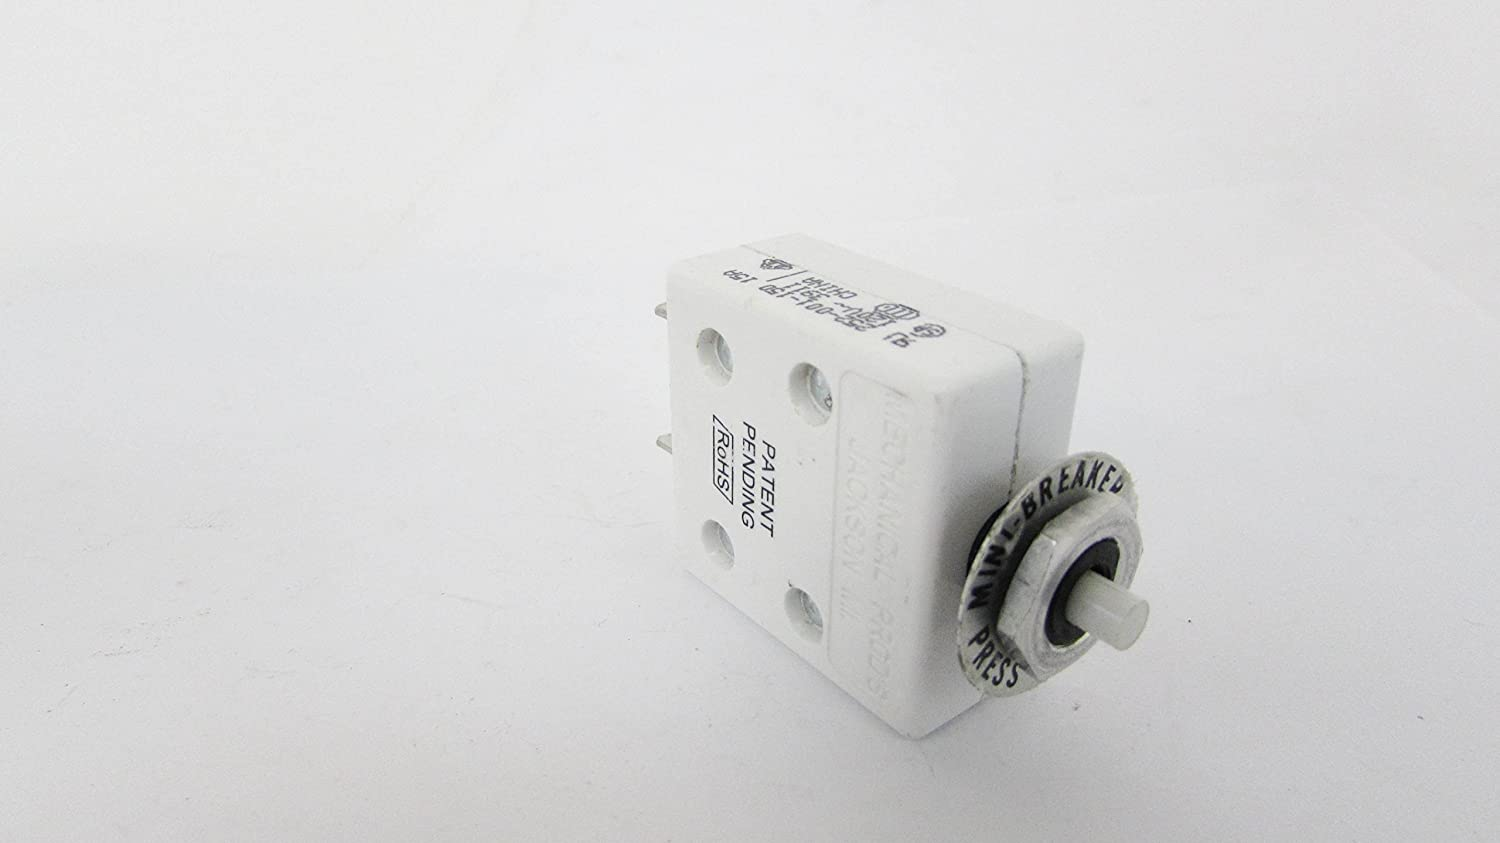 MECHANICAL PRODUCTS 252-001-150 15 AMP BREAKER